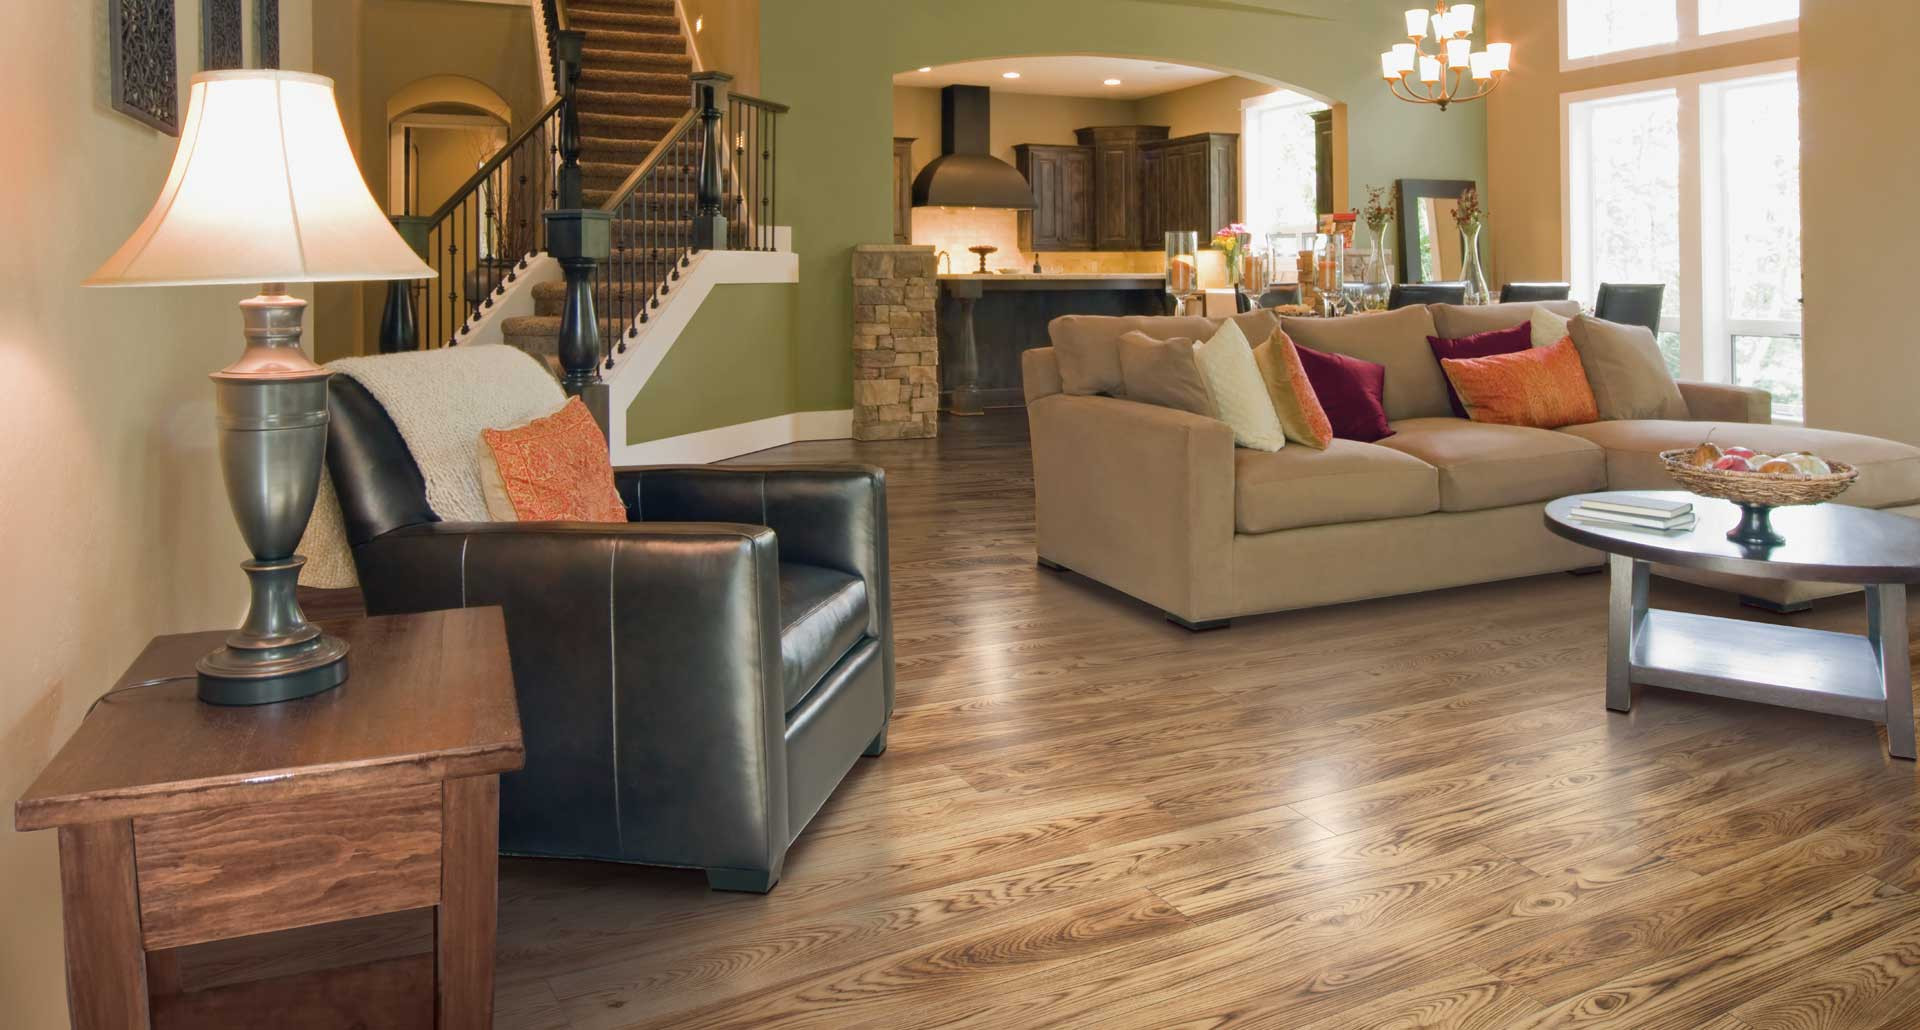 Laminate Hardwood Flooring Pros and Cons Of Living Room Laminate Flooring with Regard to top 15 Flooring Materials Costs Pros Cons 20172018